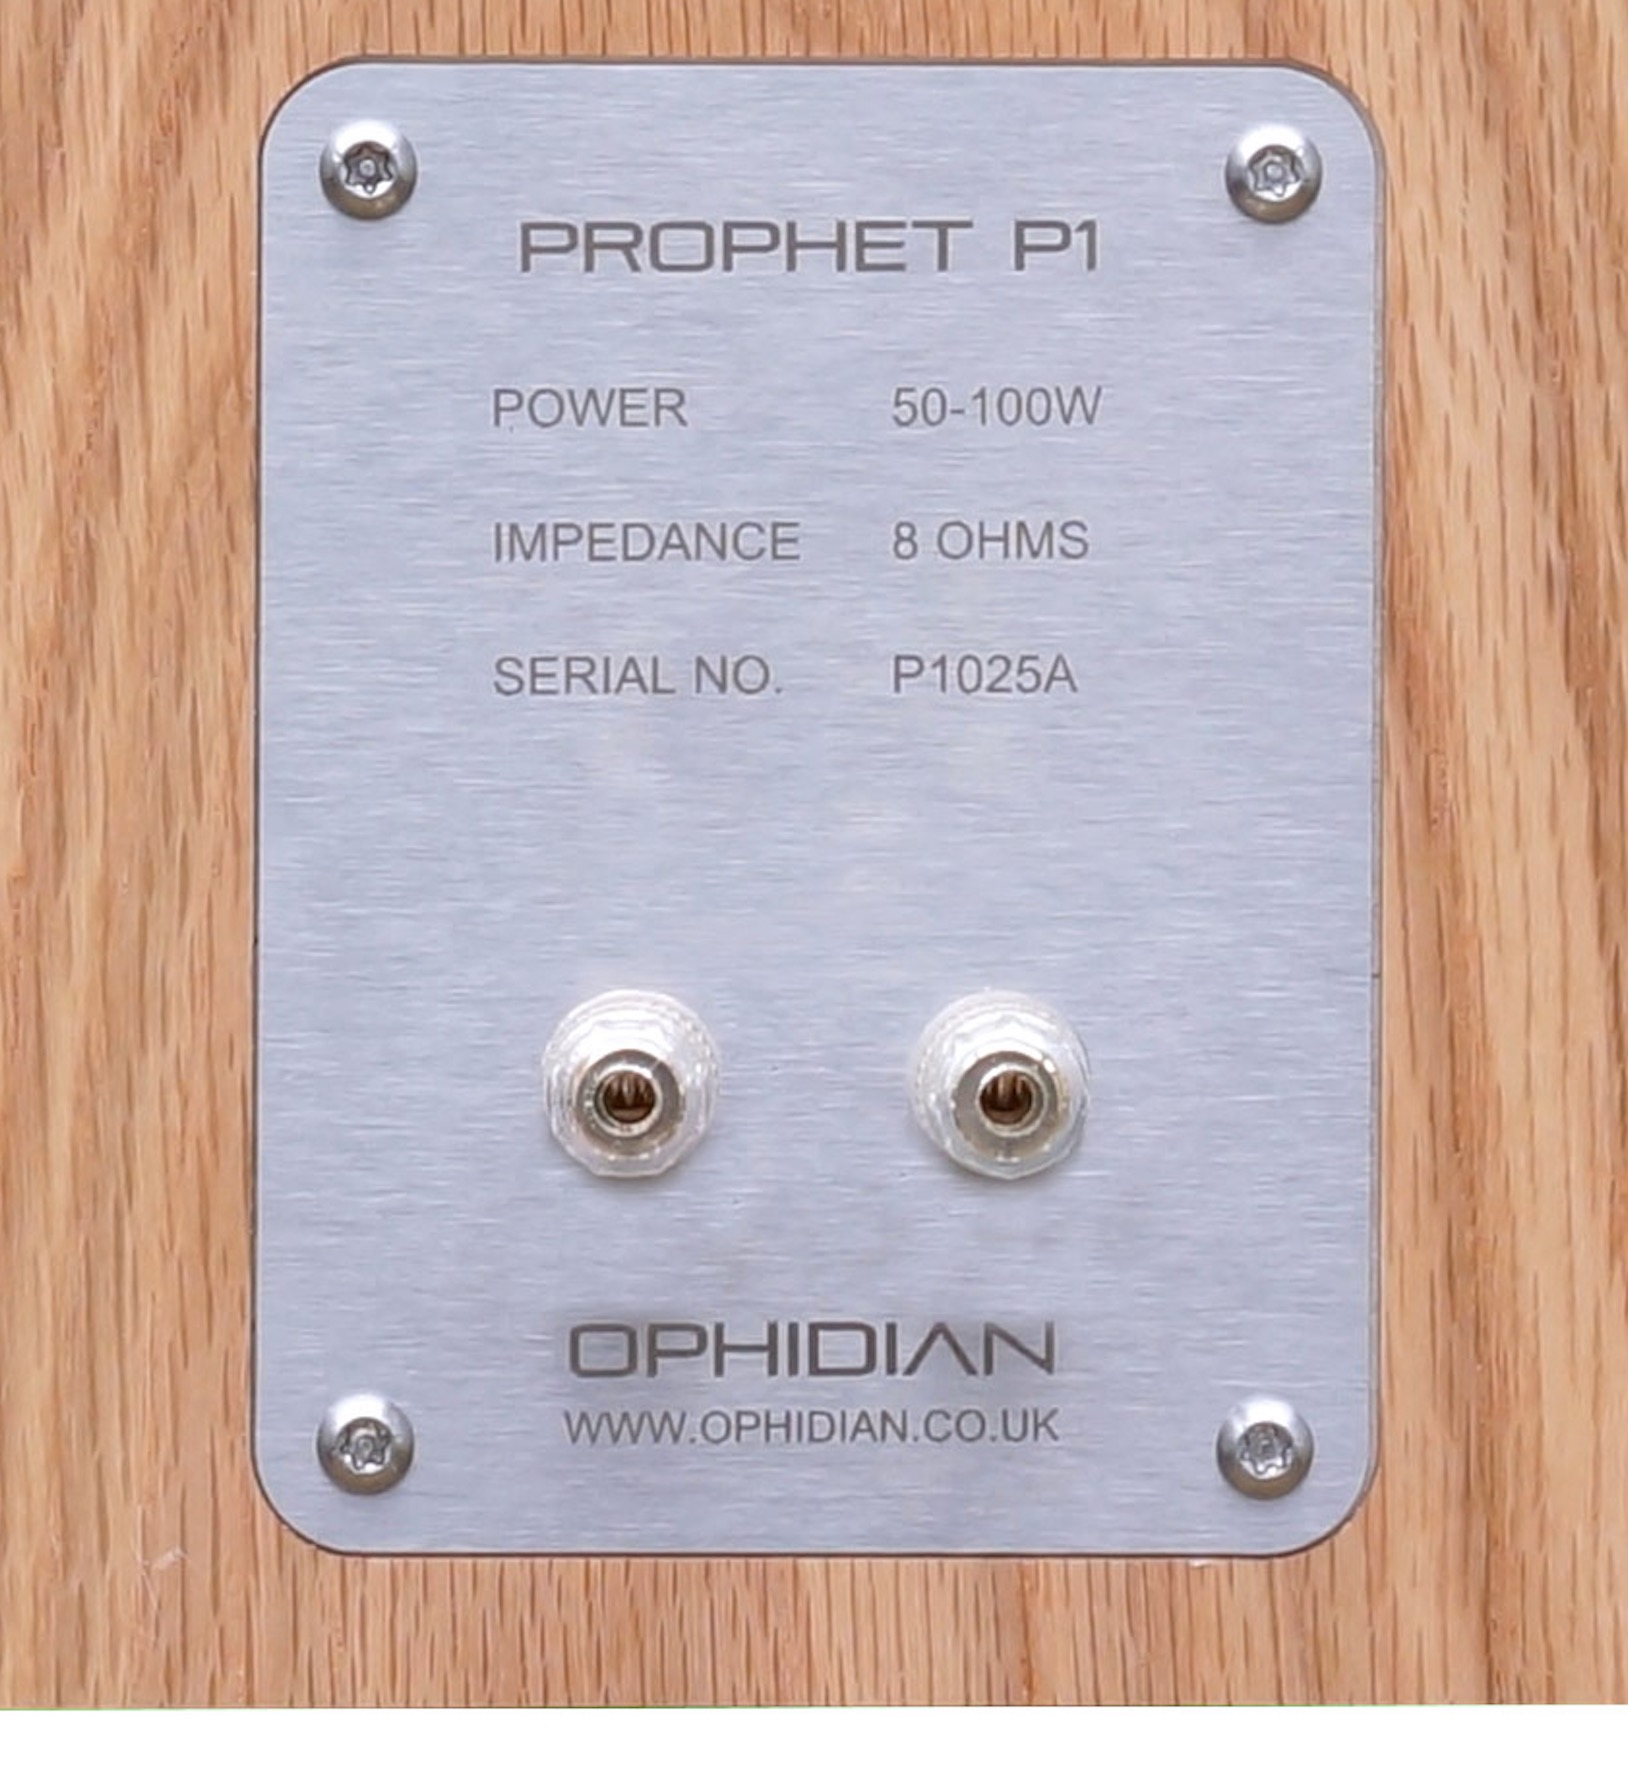 Prophet P1 Speakers from Ophidian: Divine Messages?